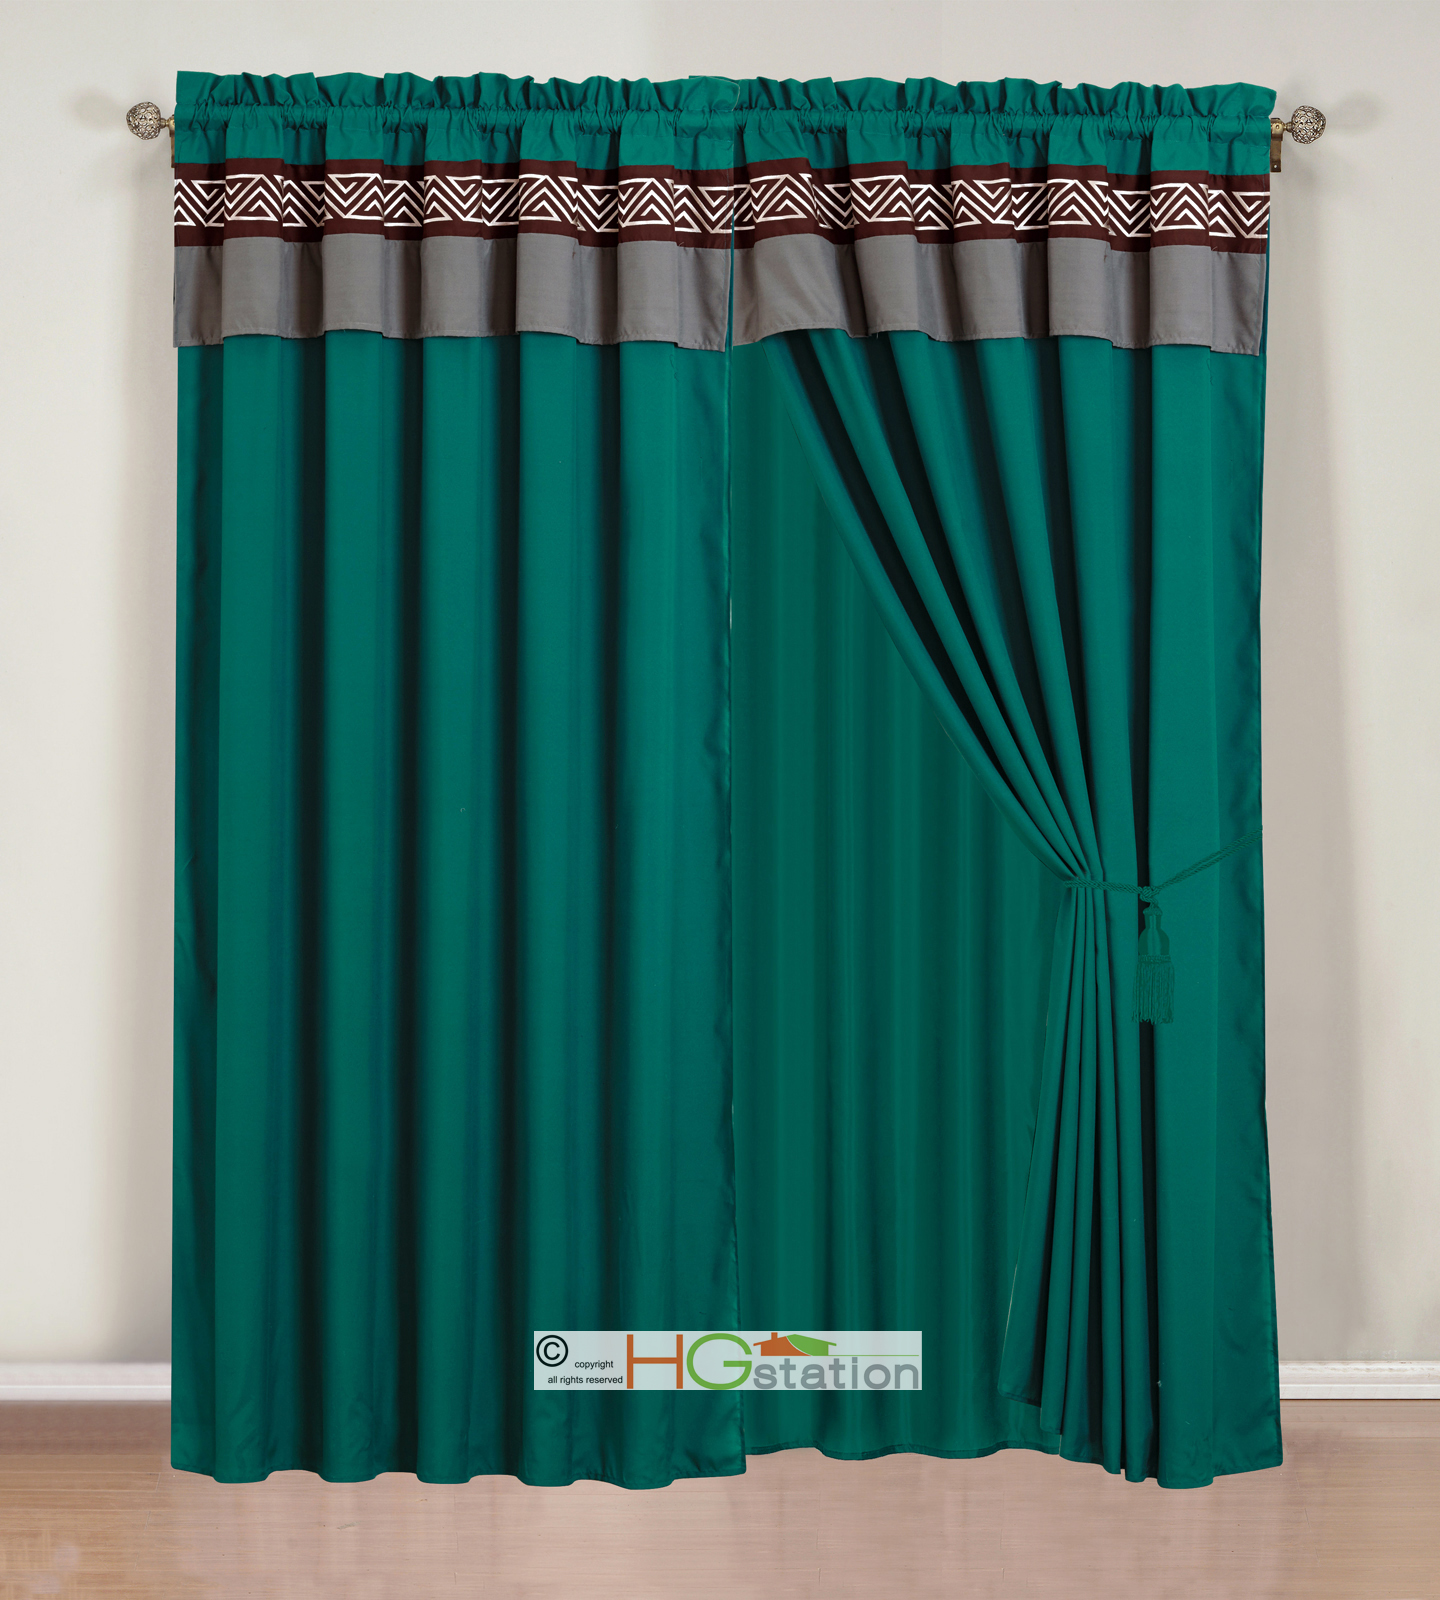 Teal valance curtains